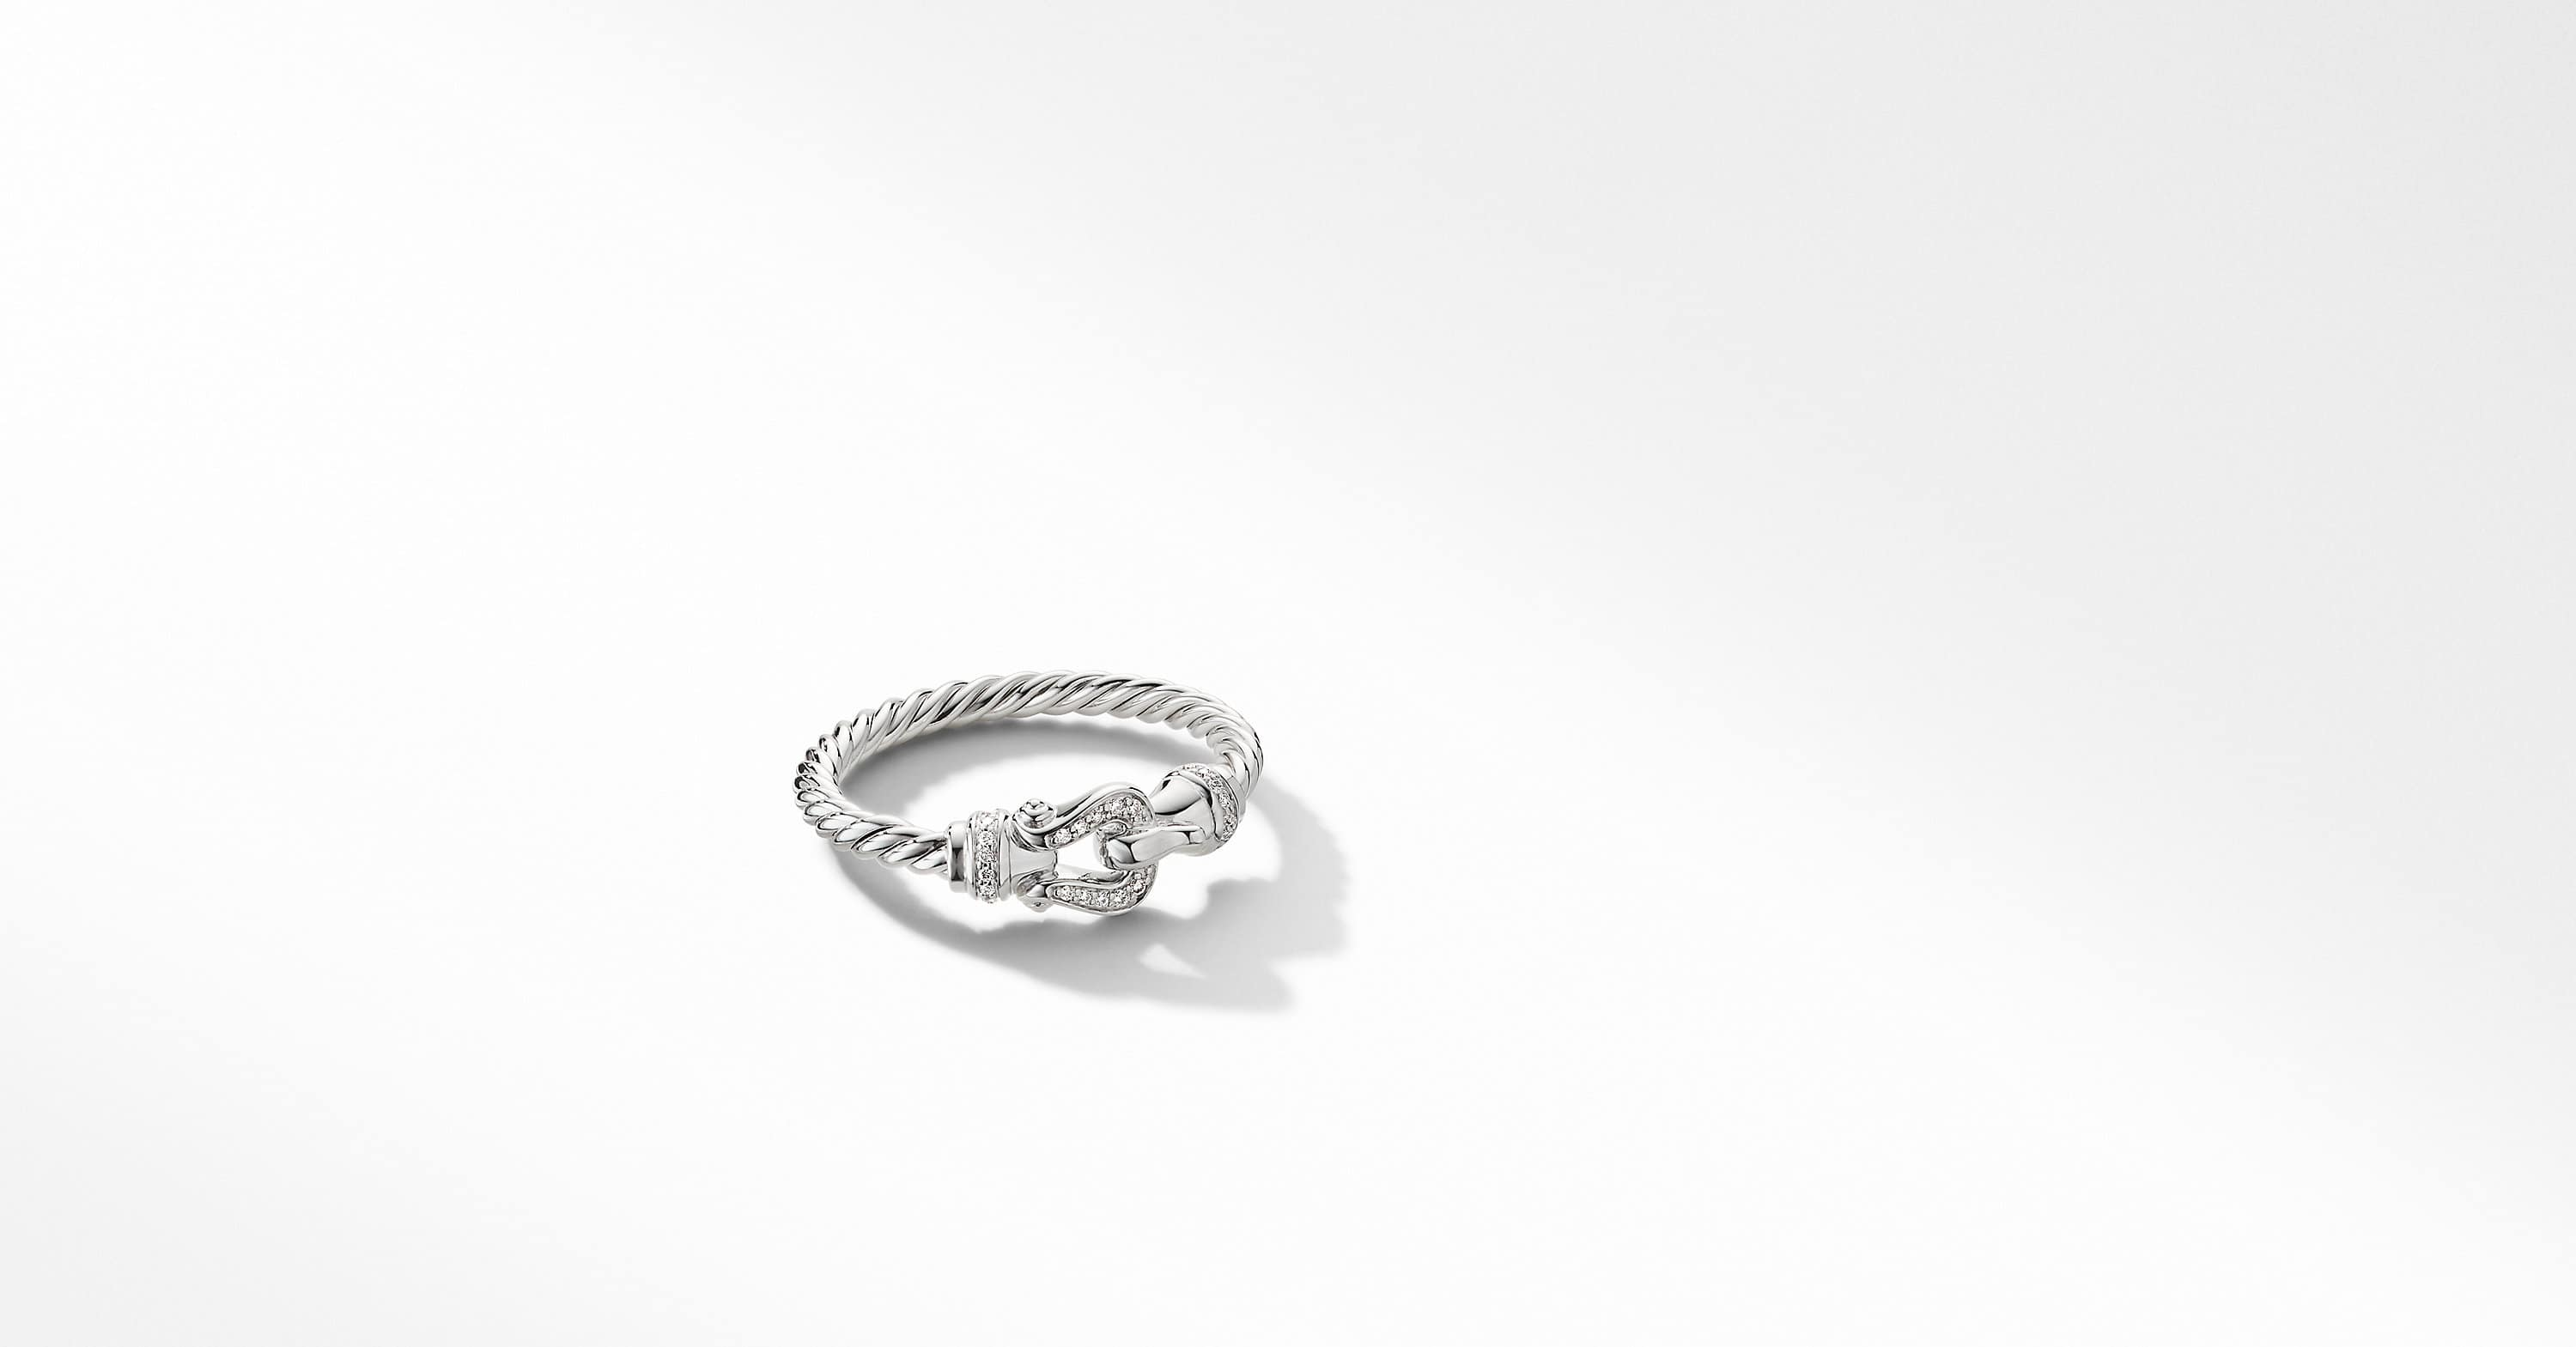 Petite Buckle Ring in 18K White Gold with Diamonds